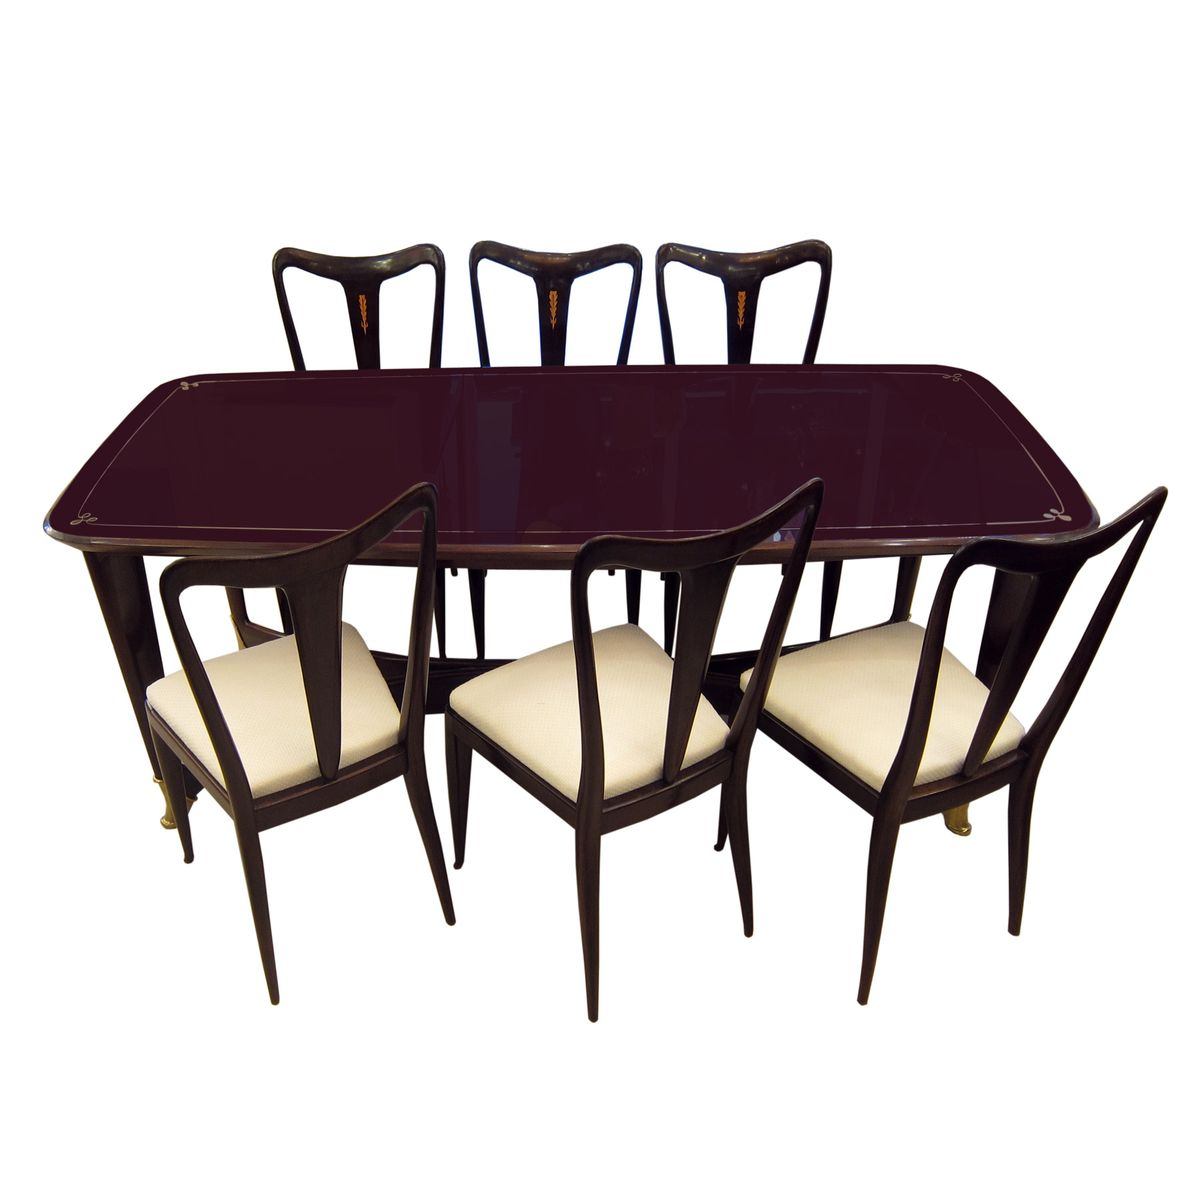 chaises de salle manger et table vintage par guglielmo ulrich set de 6 en vente sur pamono. Black Bedroom Furniture Sets. Home Design Ideas